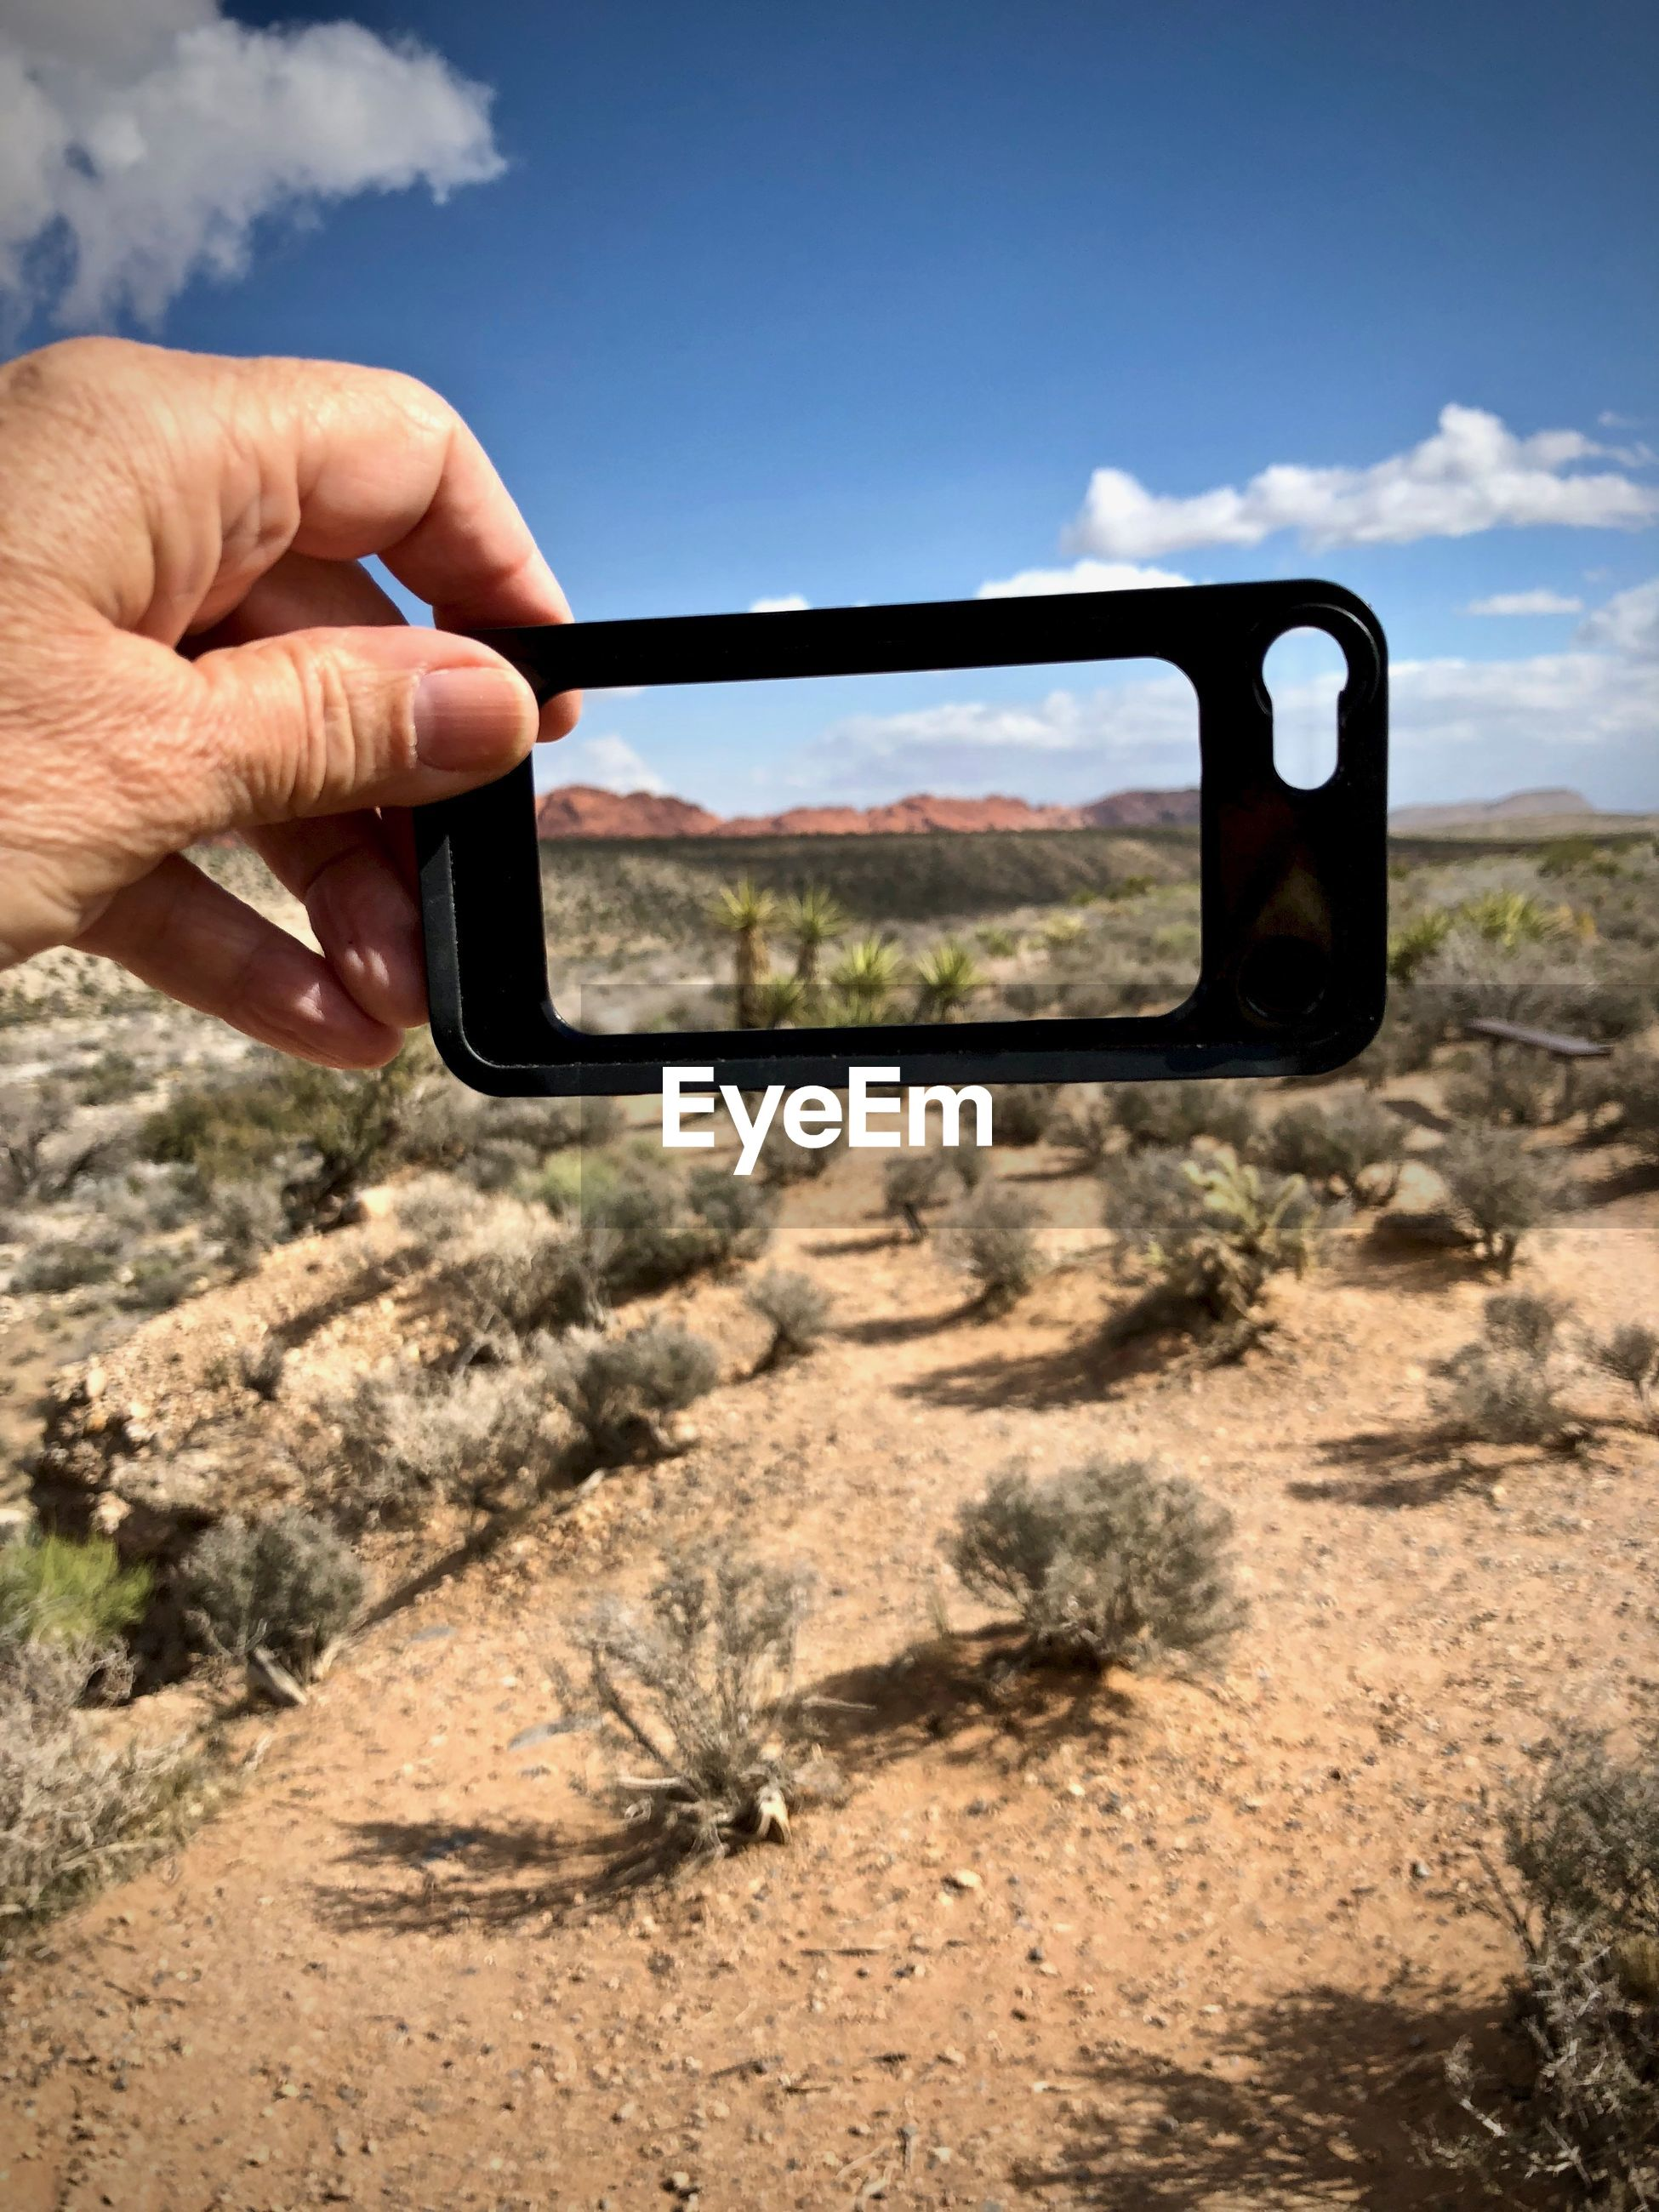 Close-up of hand holding phone cover in desert against sky